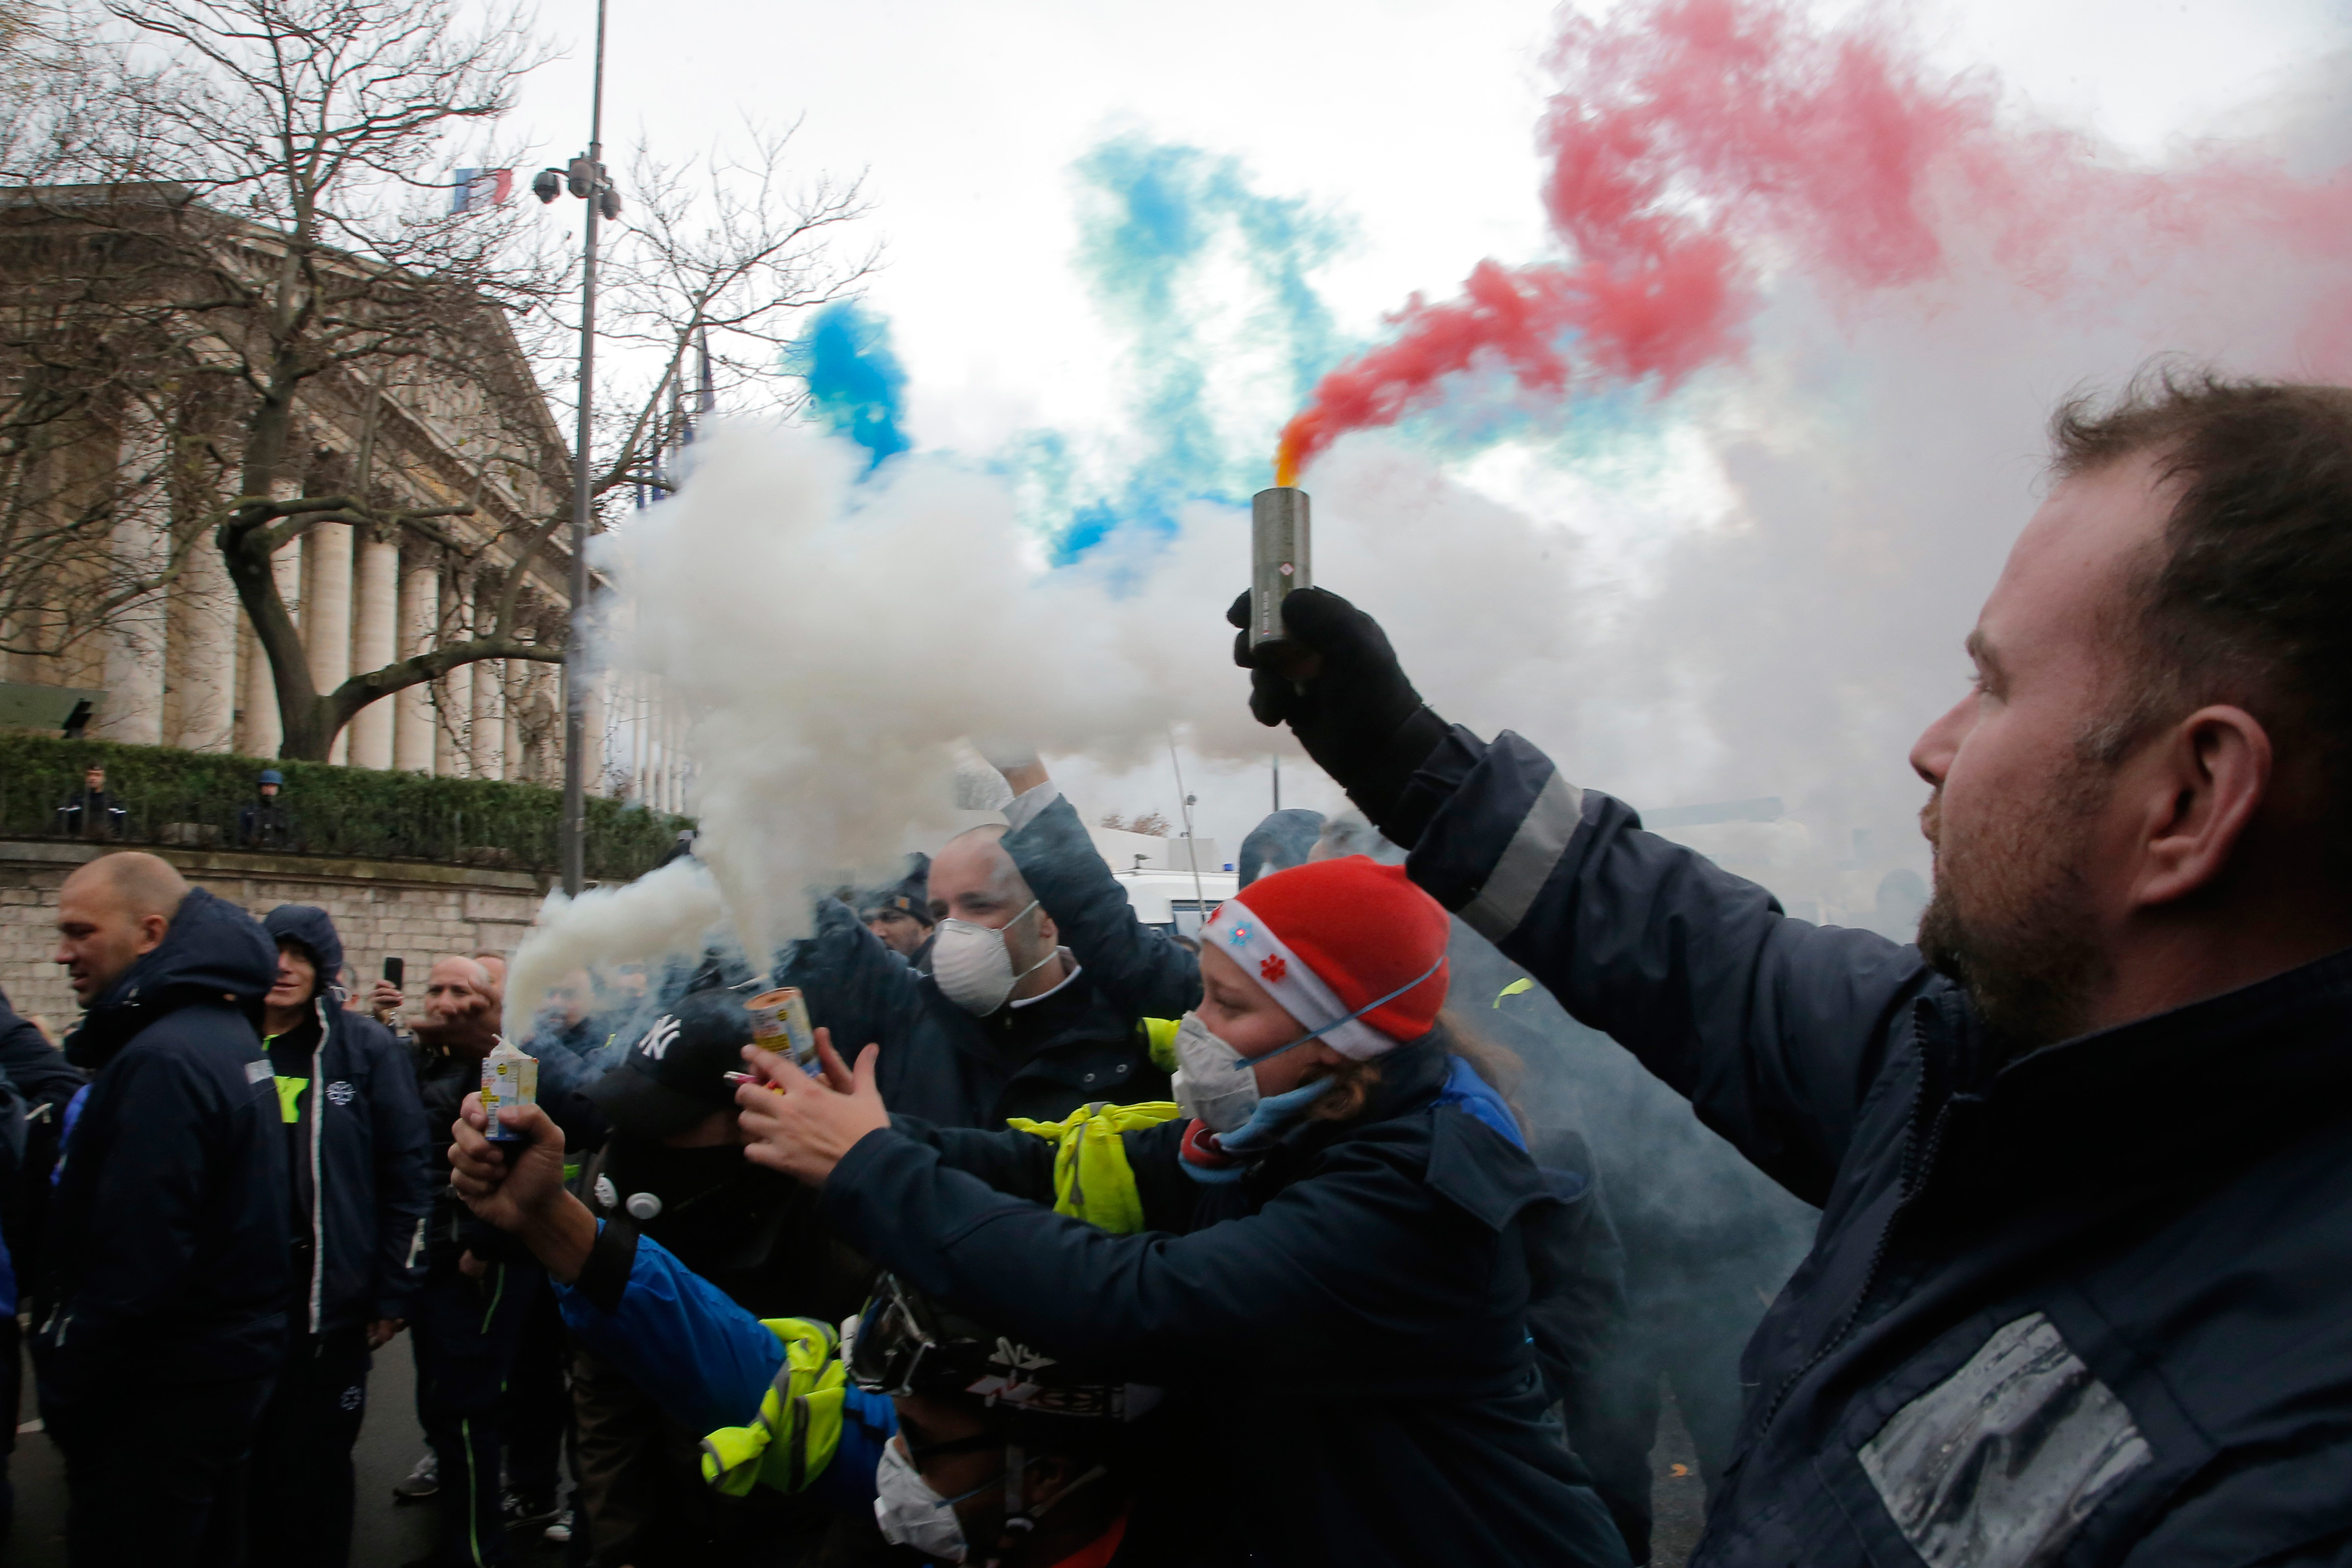 France delays fuel tax hike after violent riots: report